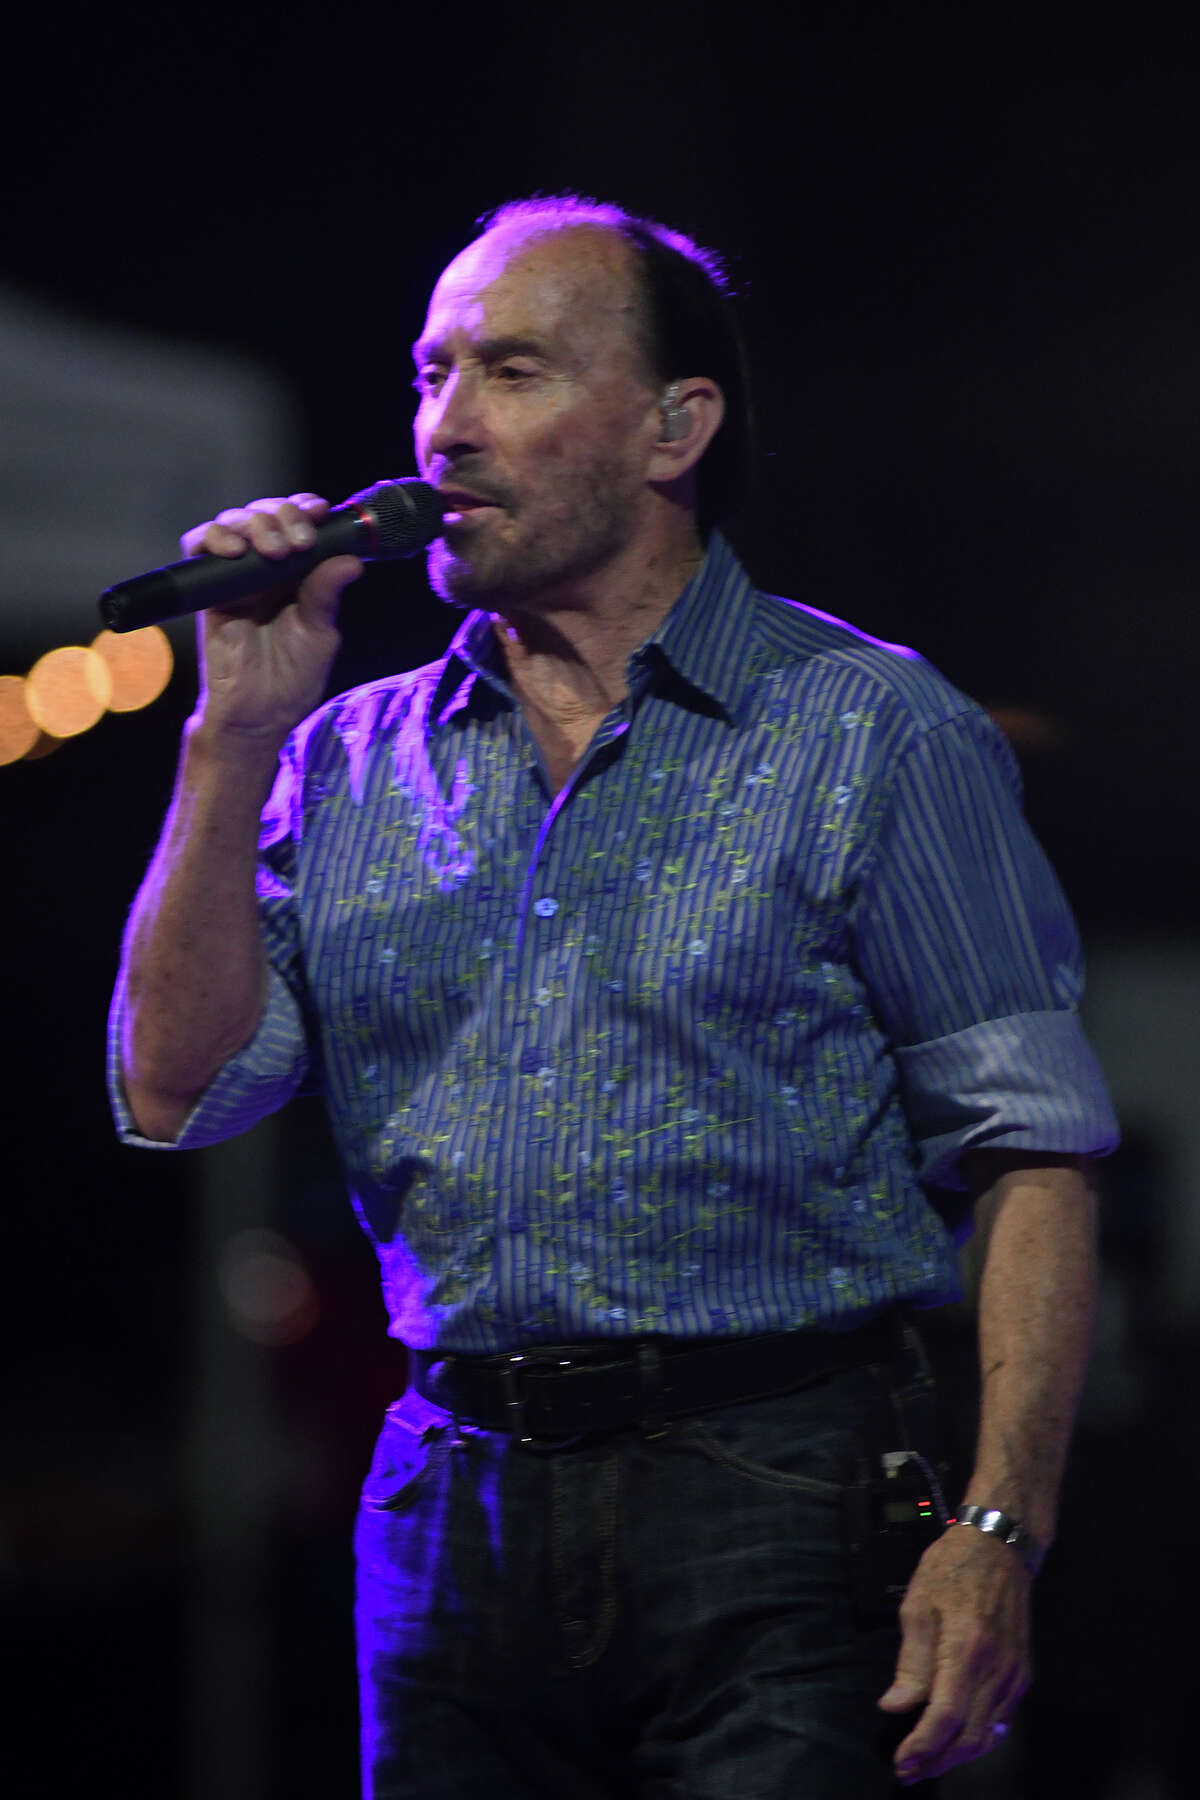 Lee Greenwood performs during his concert at Kingwood Town Center on Dec. 21, 2017.